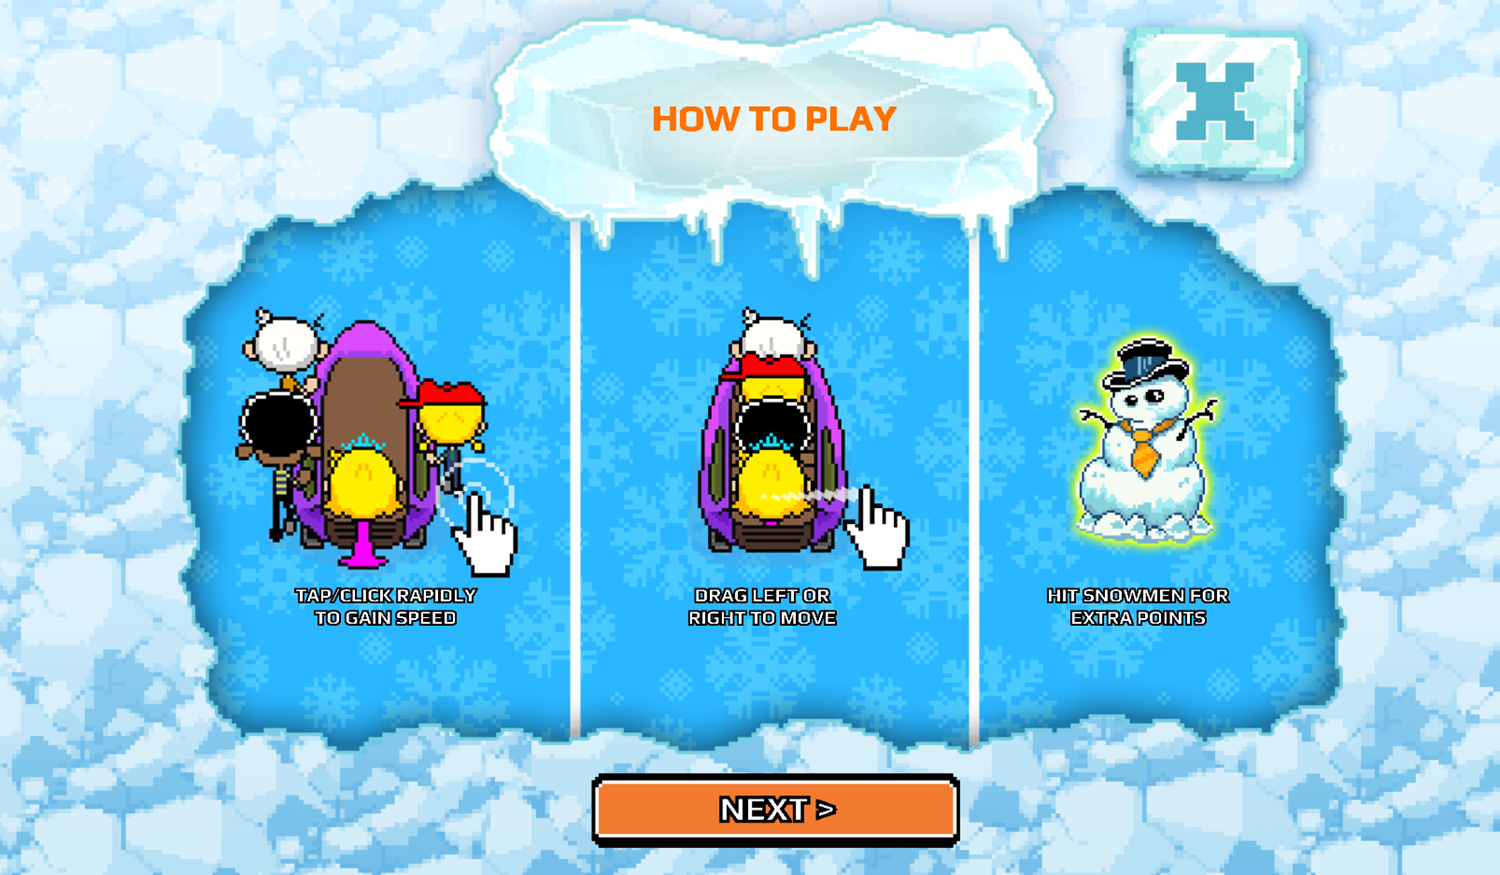 Nick Champions of the Chill 2 Game Loud Loud Loud Sled How To Play Screenshot.